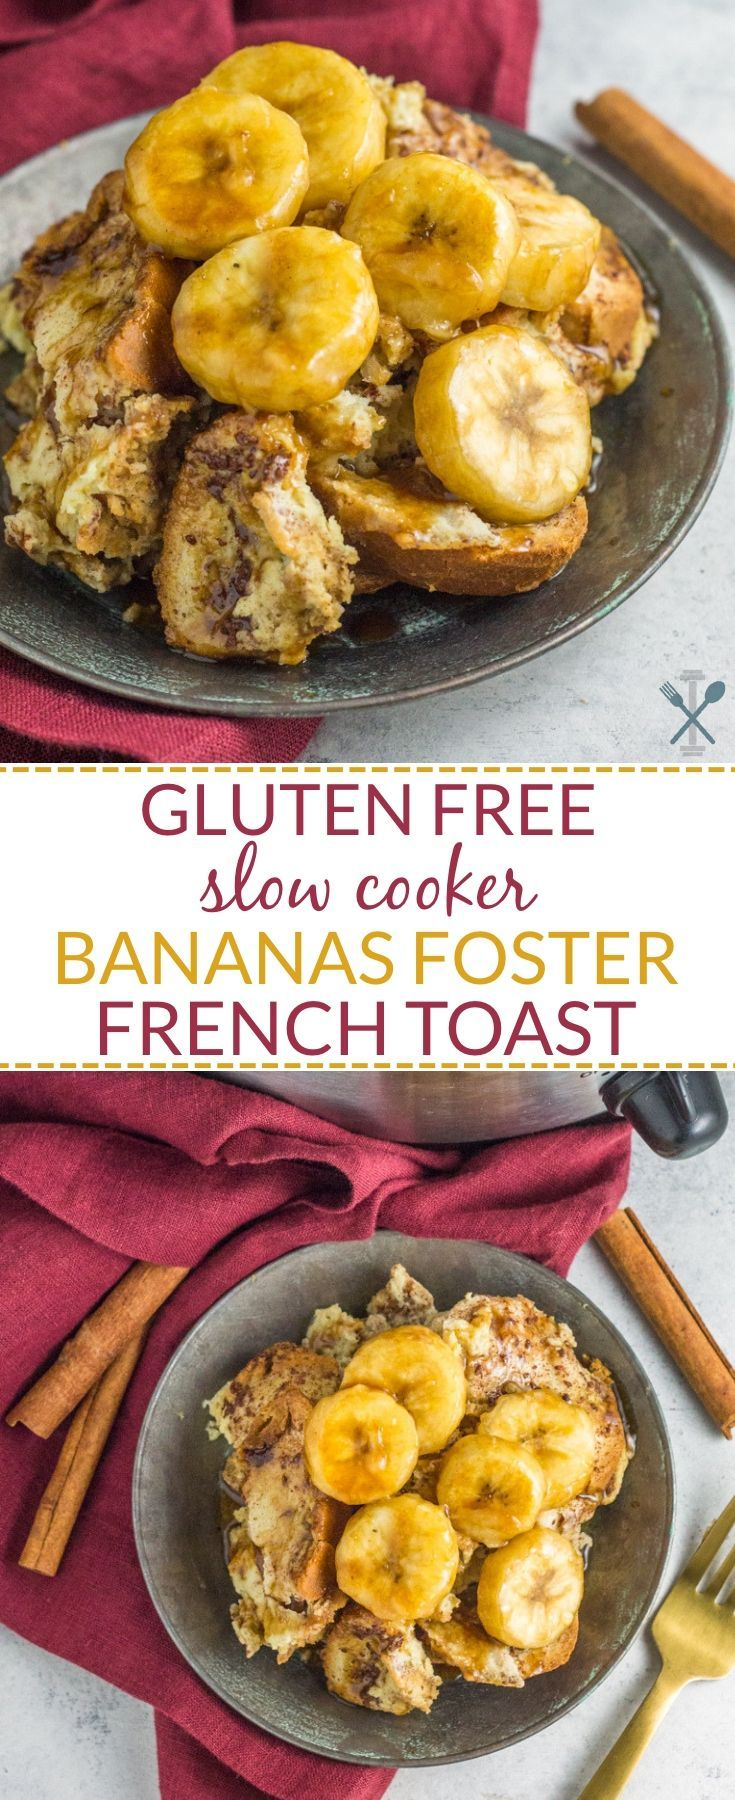 Gluten Free Slow Cooker Bananas Foster French Toast